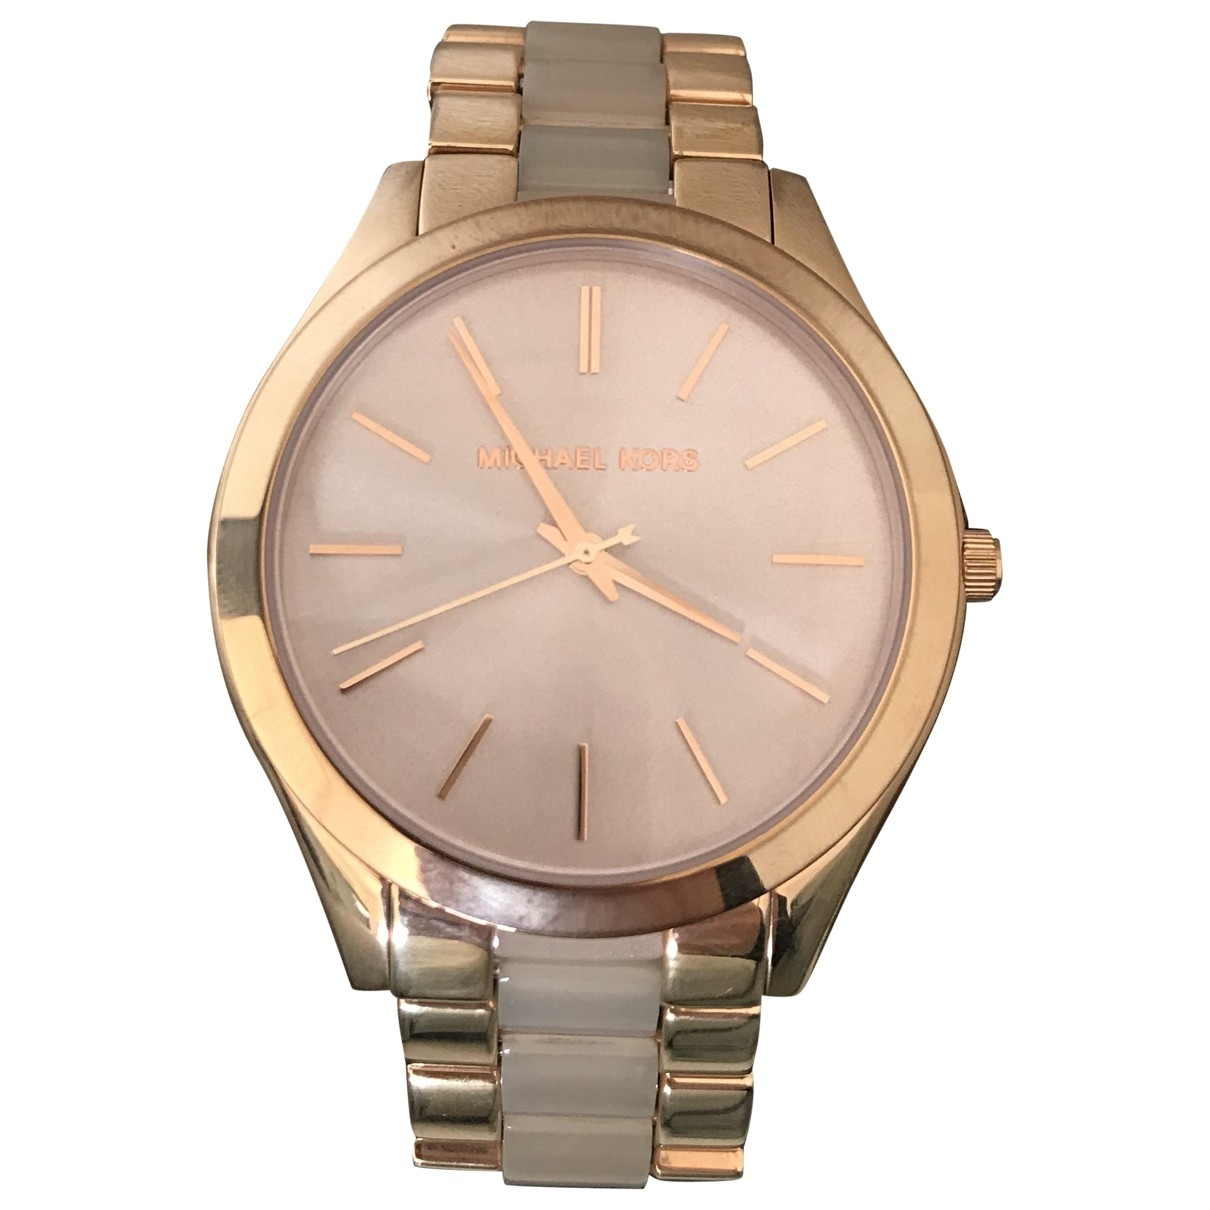 Michael Kors \N Steel watch for Women \N